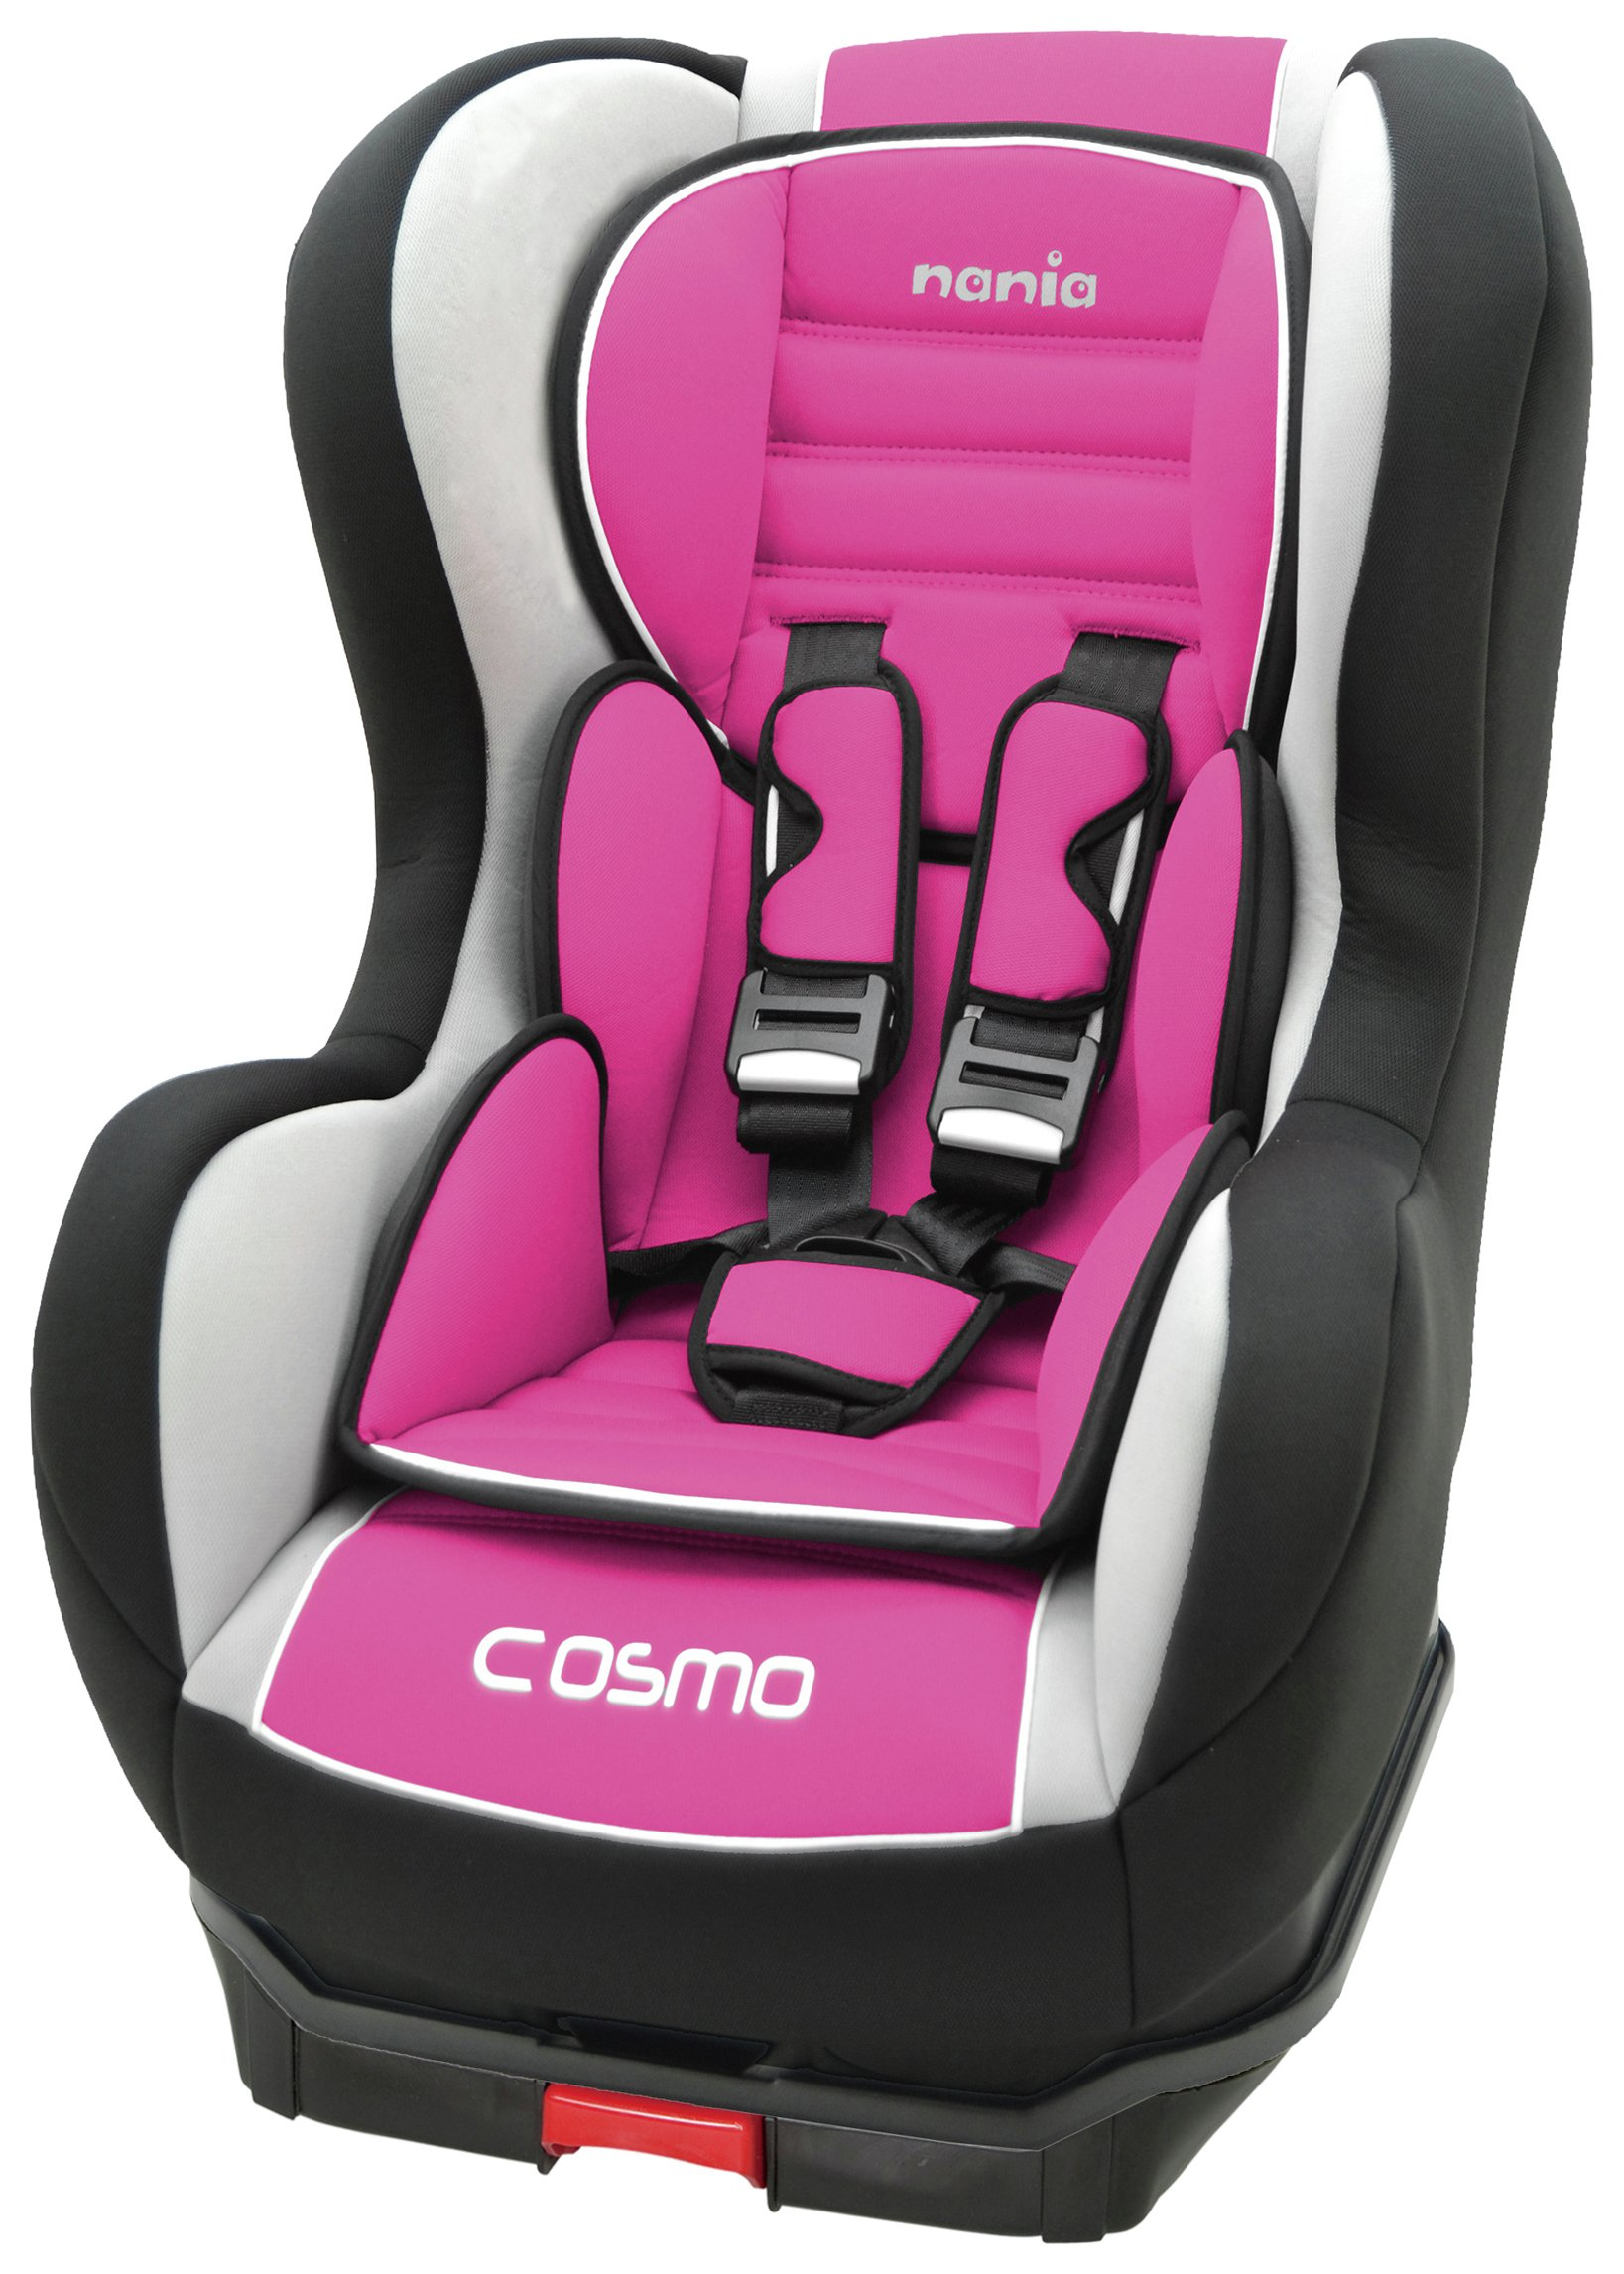 Buy Nania Cosmo Group 1 ISOFIX Car Seat